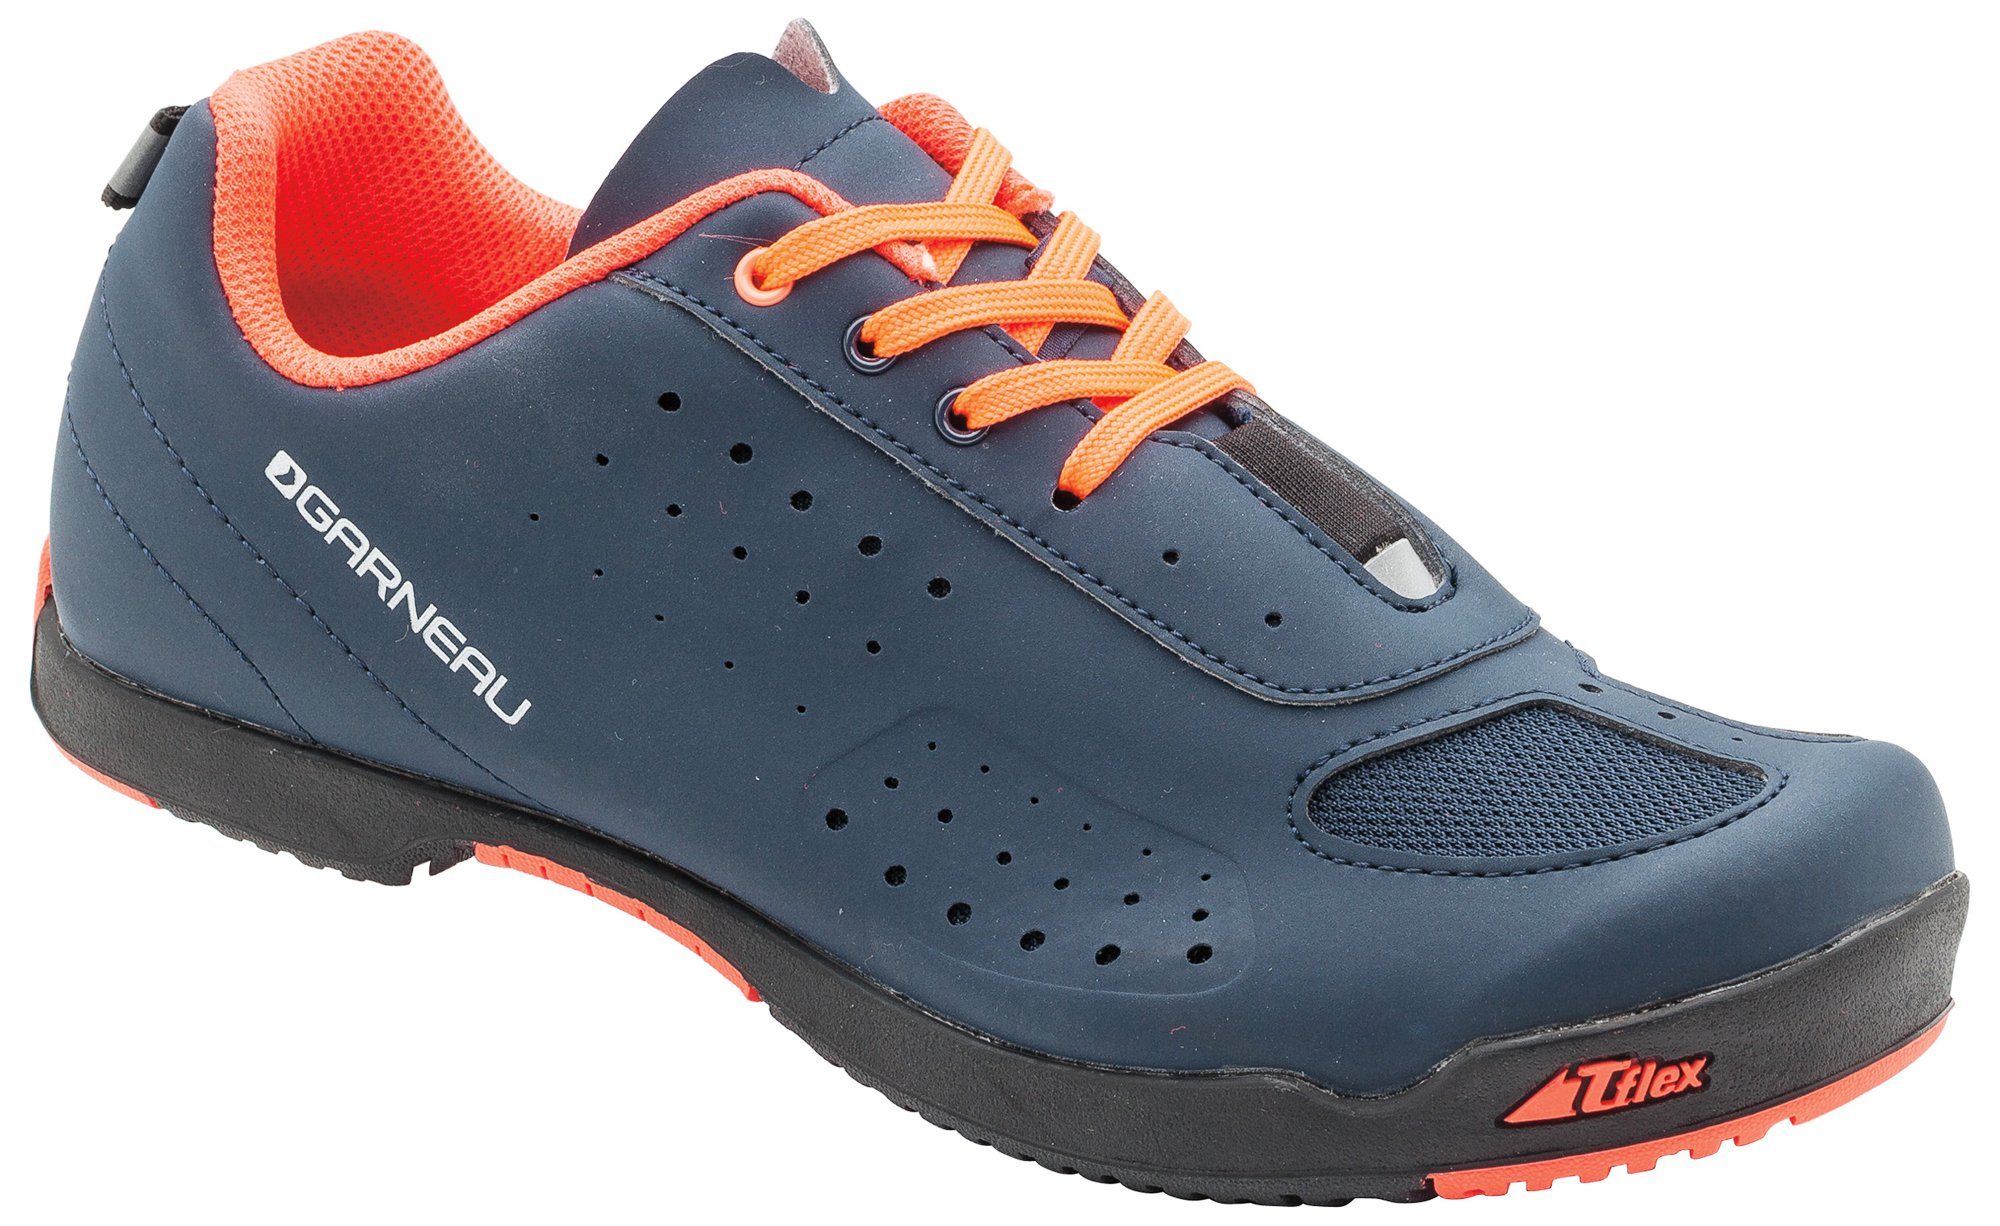 Louis Garneau - Women's Urban Bike Shoes, Dark Night/Coral Mania, US (6.5), EU (37)